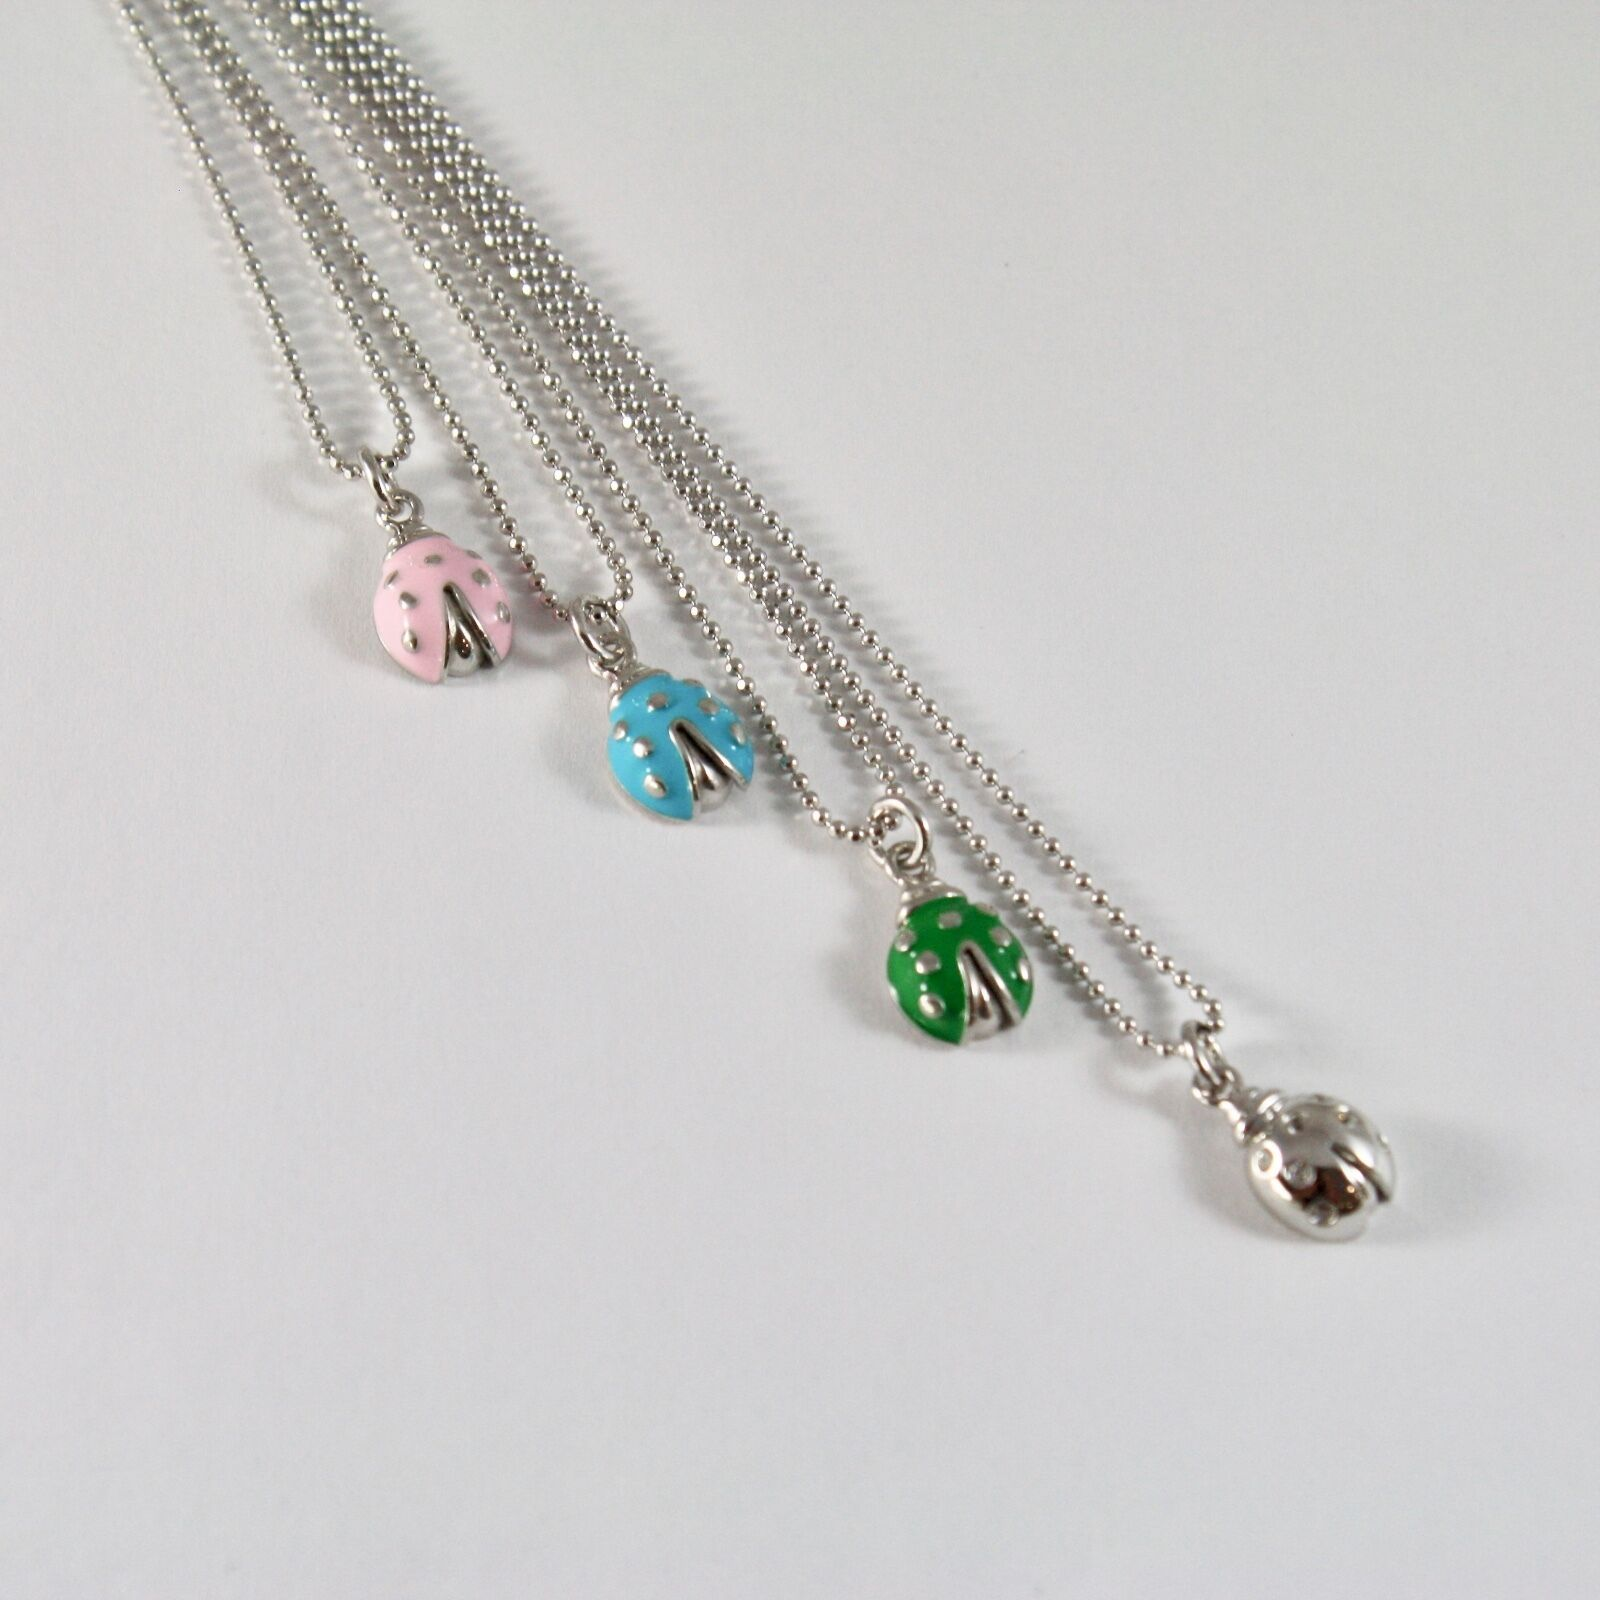 925 Sterling Silver Necklace Jack&co with Beads Shiny and Ladybug Enamelled 45